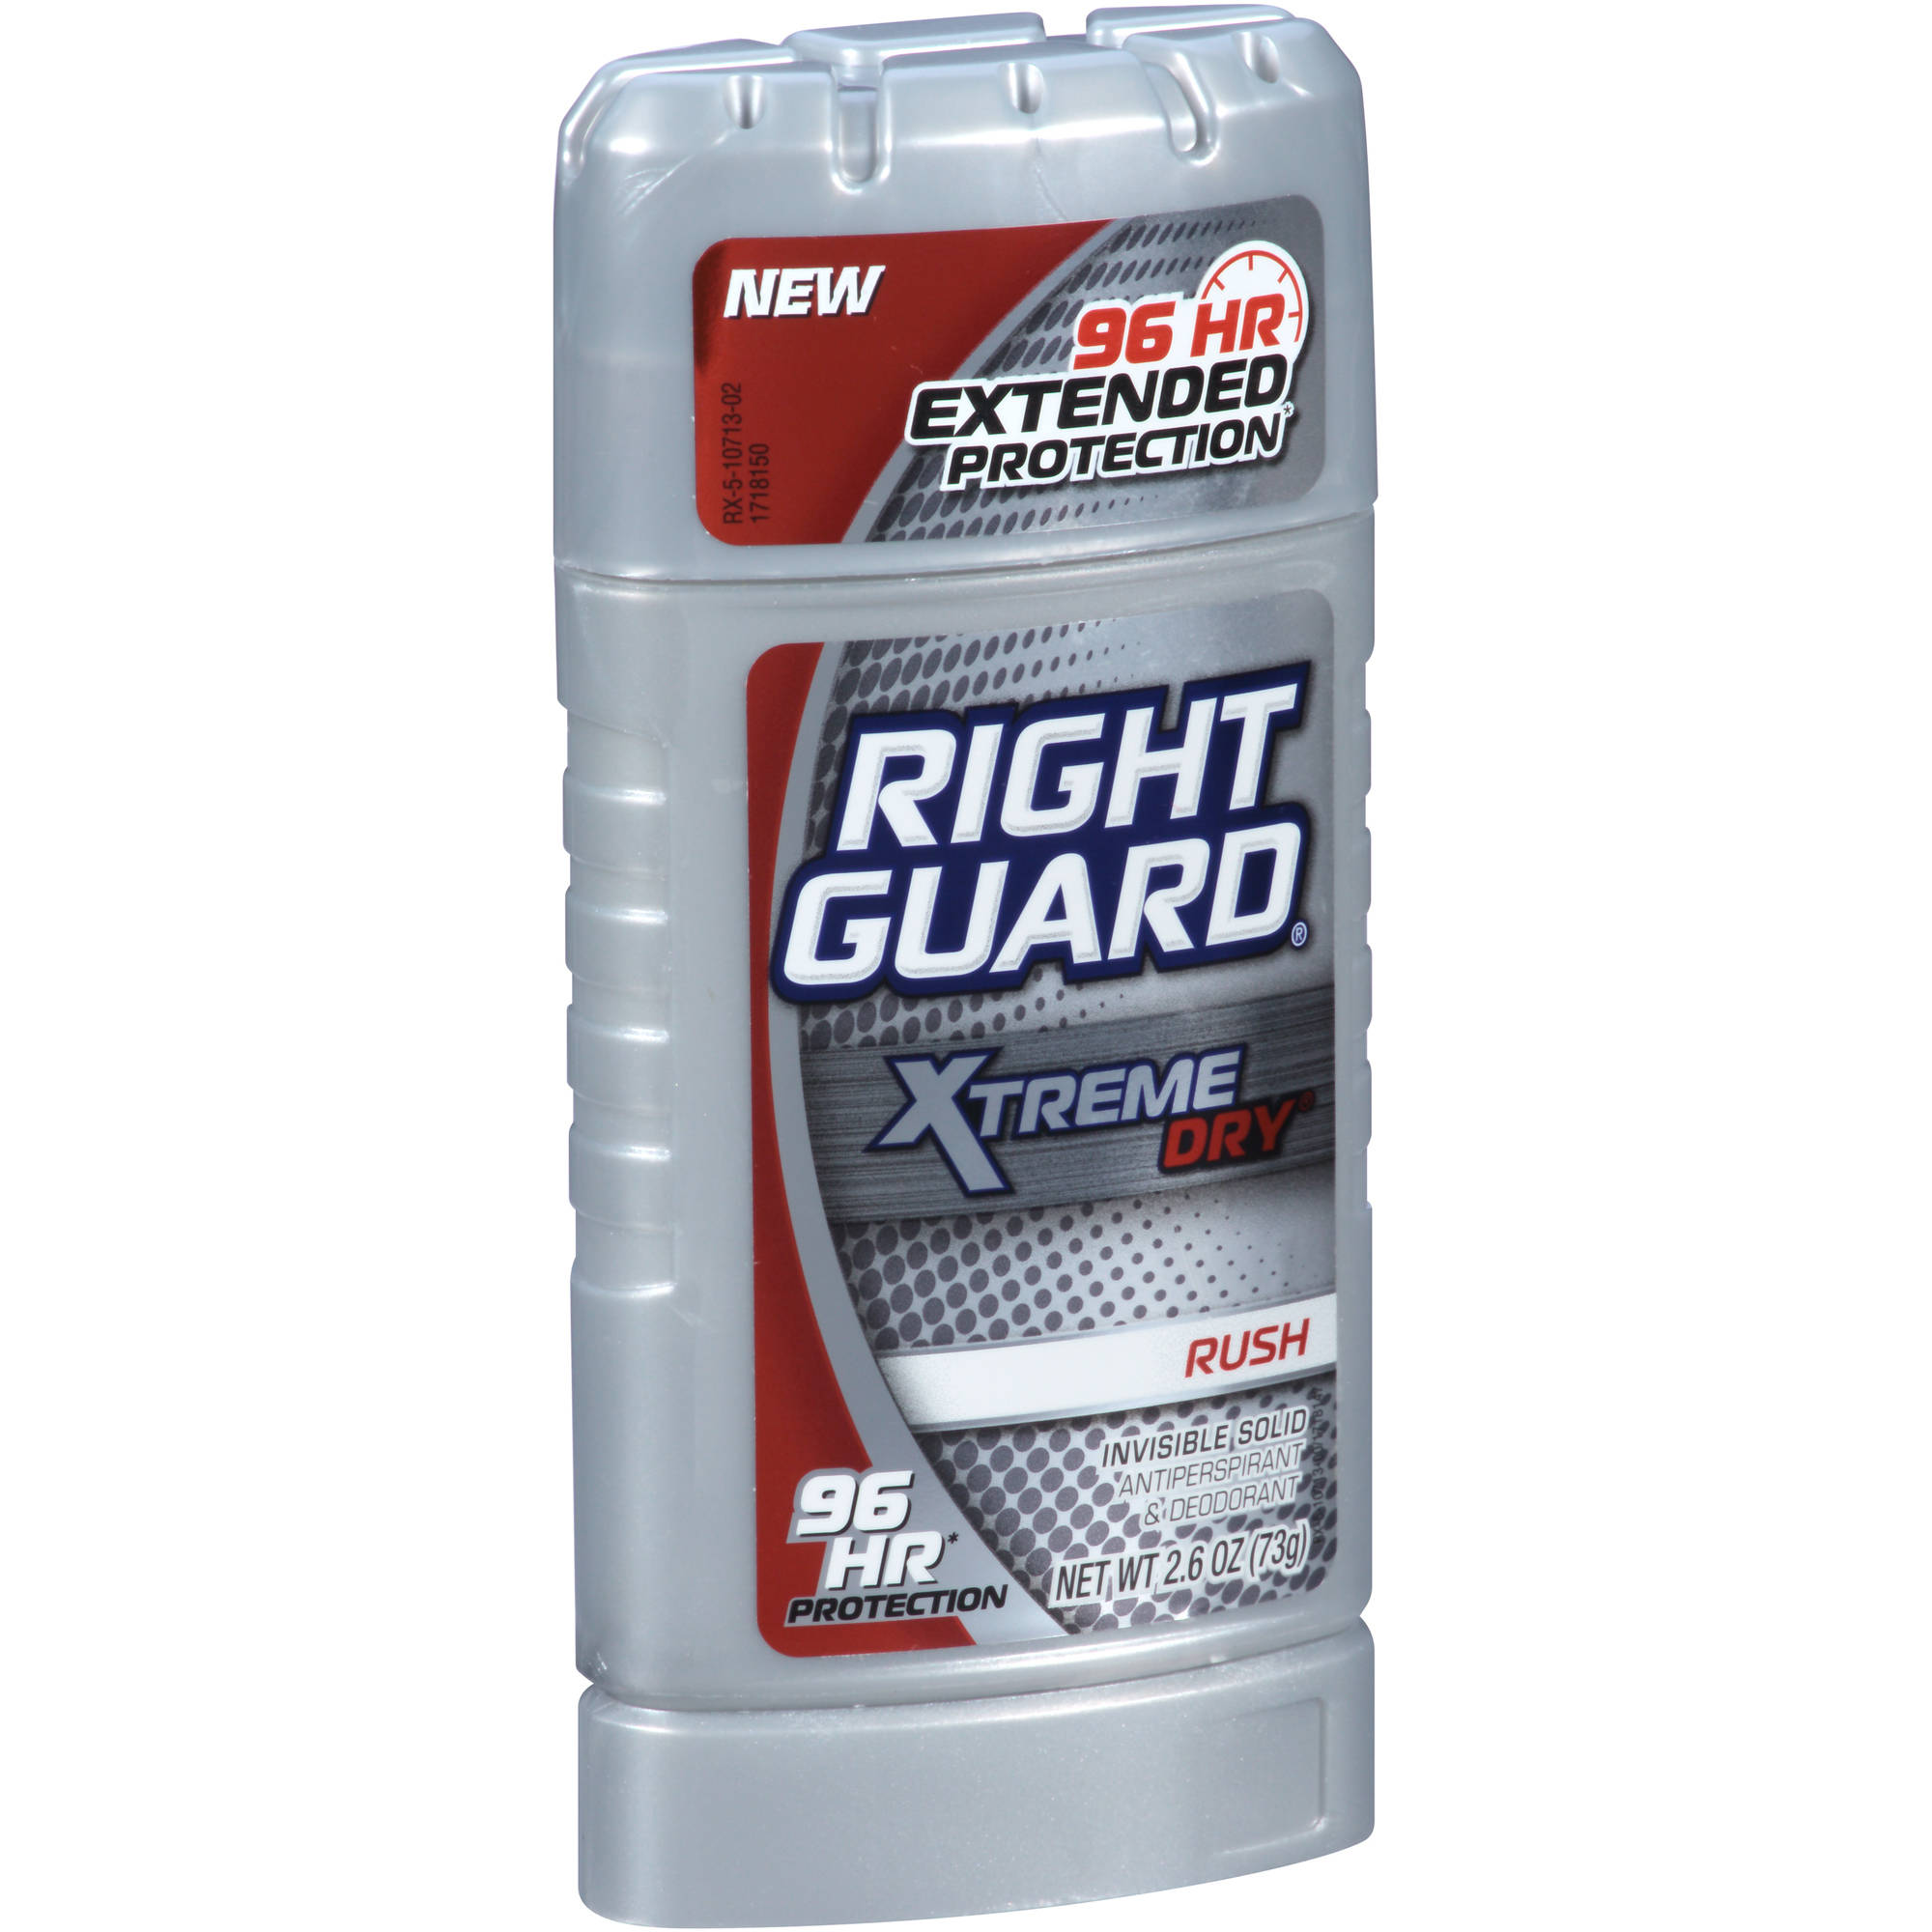 Right Guard Xtreme Dry Rush Invisible Solid Antiperspirant & Deodorant, 2.6 oz